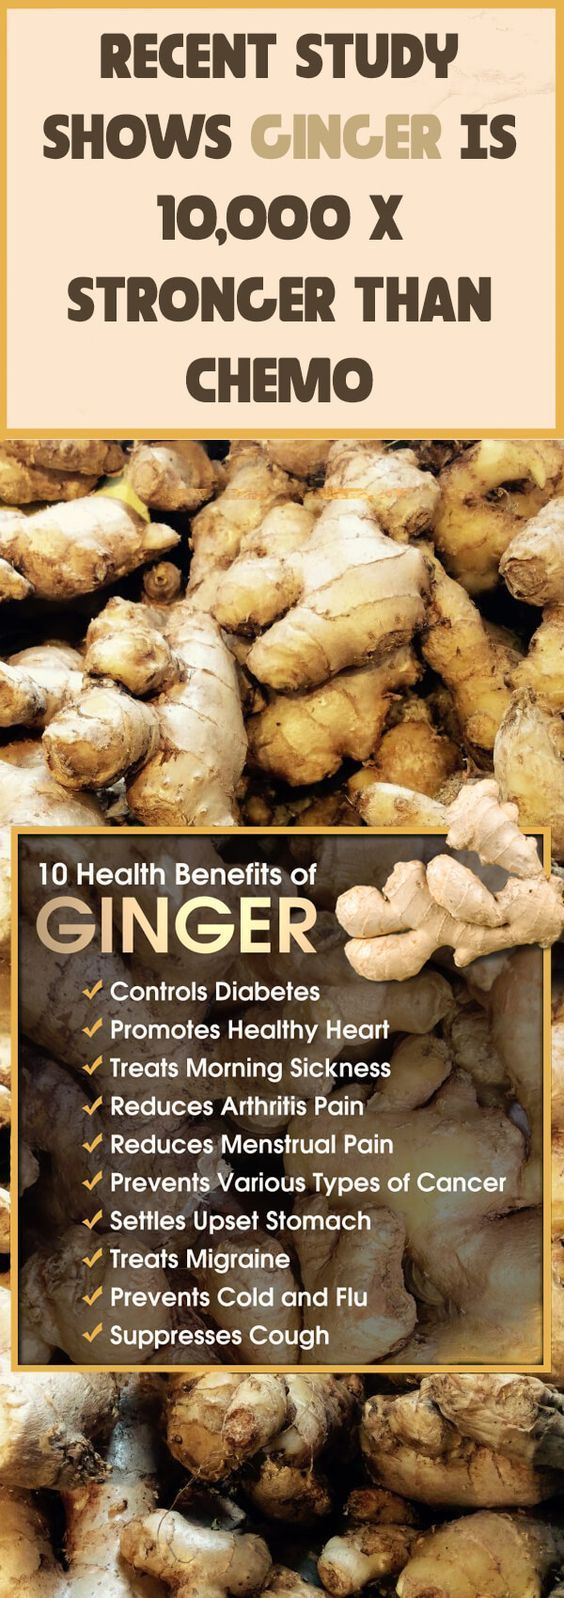 Health Benefits of Ginger. Learn about the healing qualities of alkaline rich Kangen Water; it's antioxidant loaded, hydrogen rich, ionized water that neutralizes free radicals that cause oxidative stress which can lead to disease such as cancer. Many med http://www.buzzblend.com